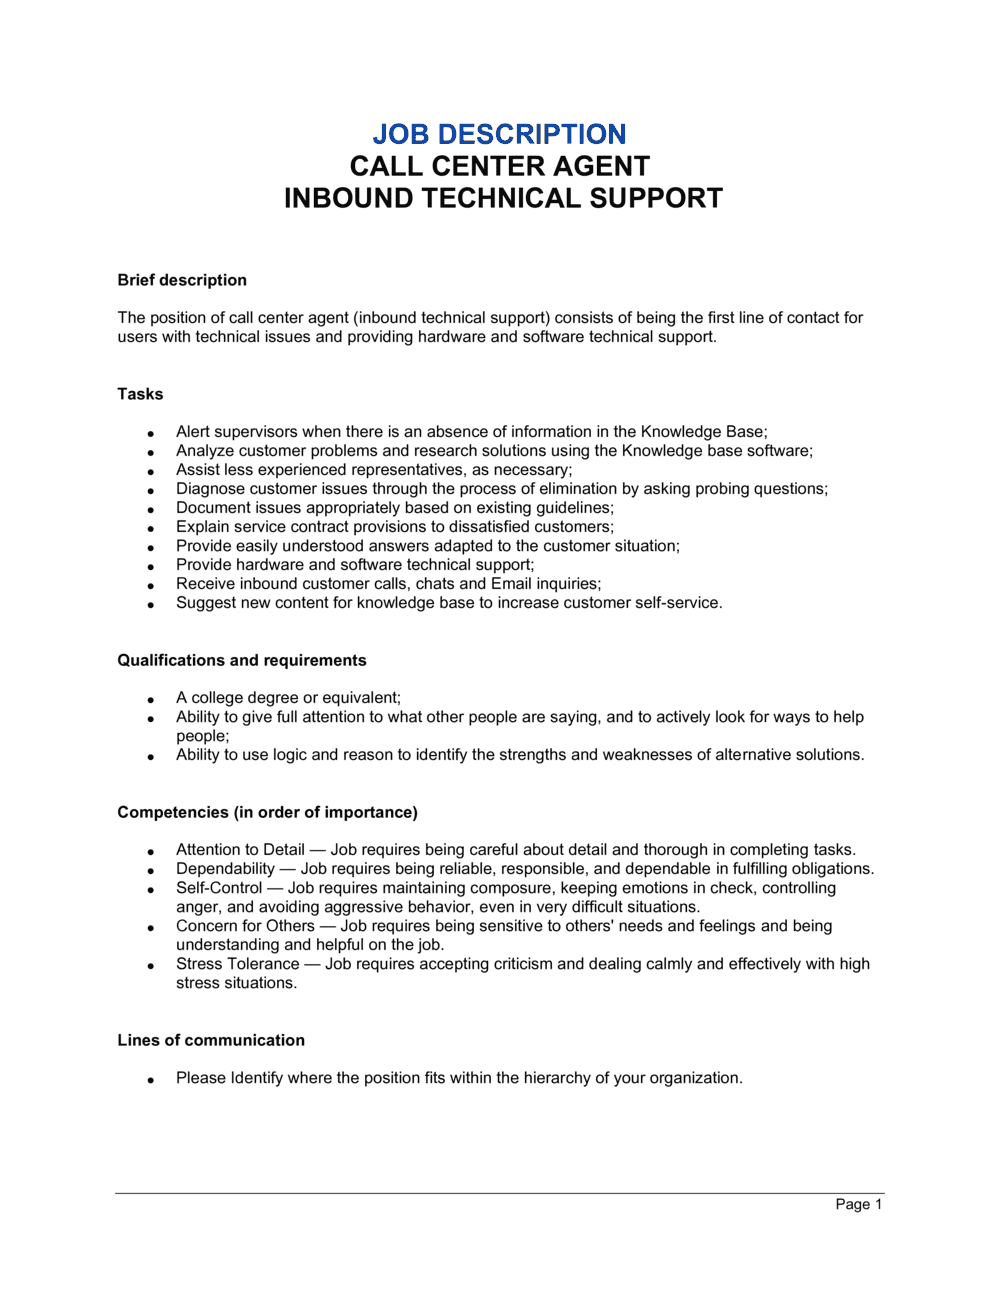 Business-in-a-Box's Call Center Agent Inbound_Technical Support Job Description Template